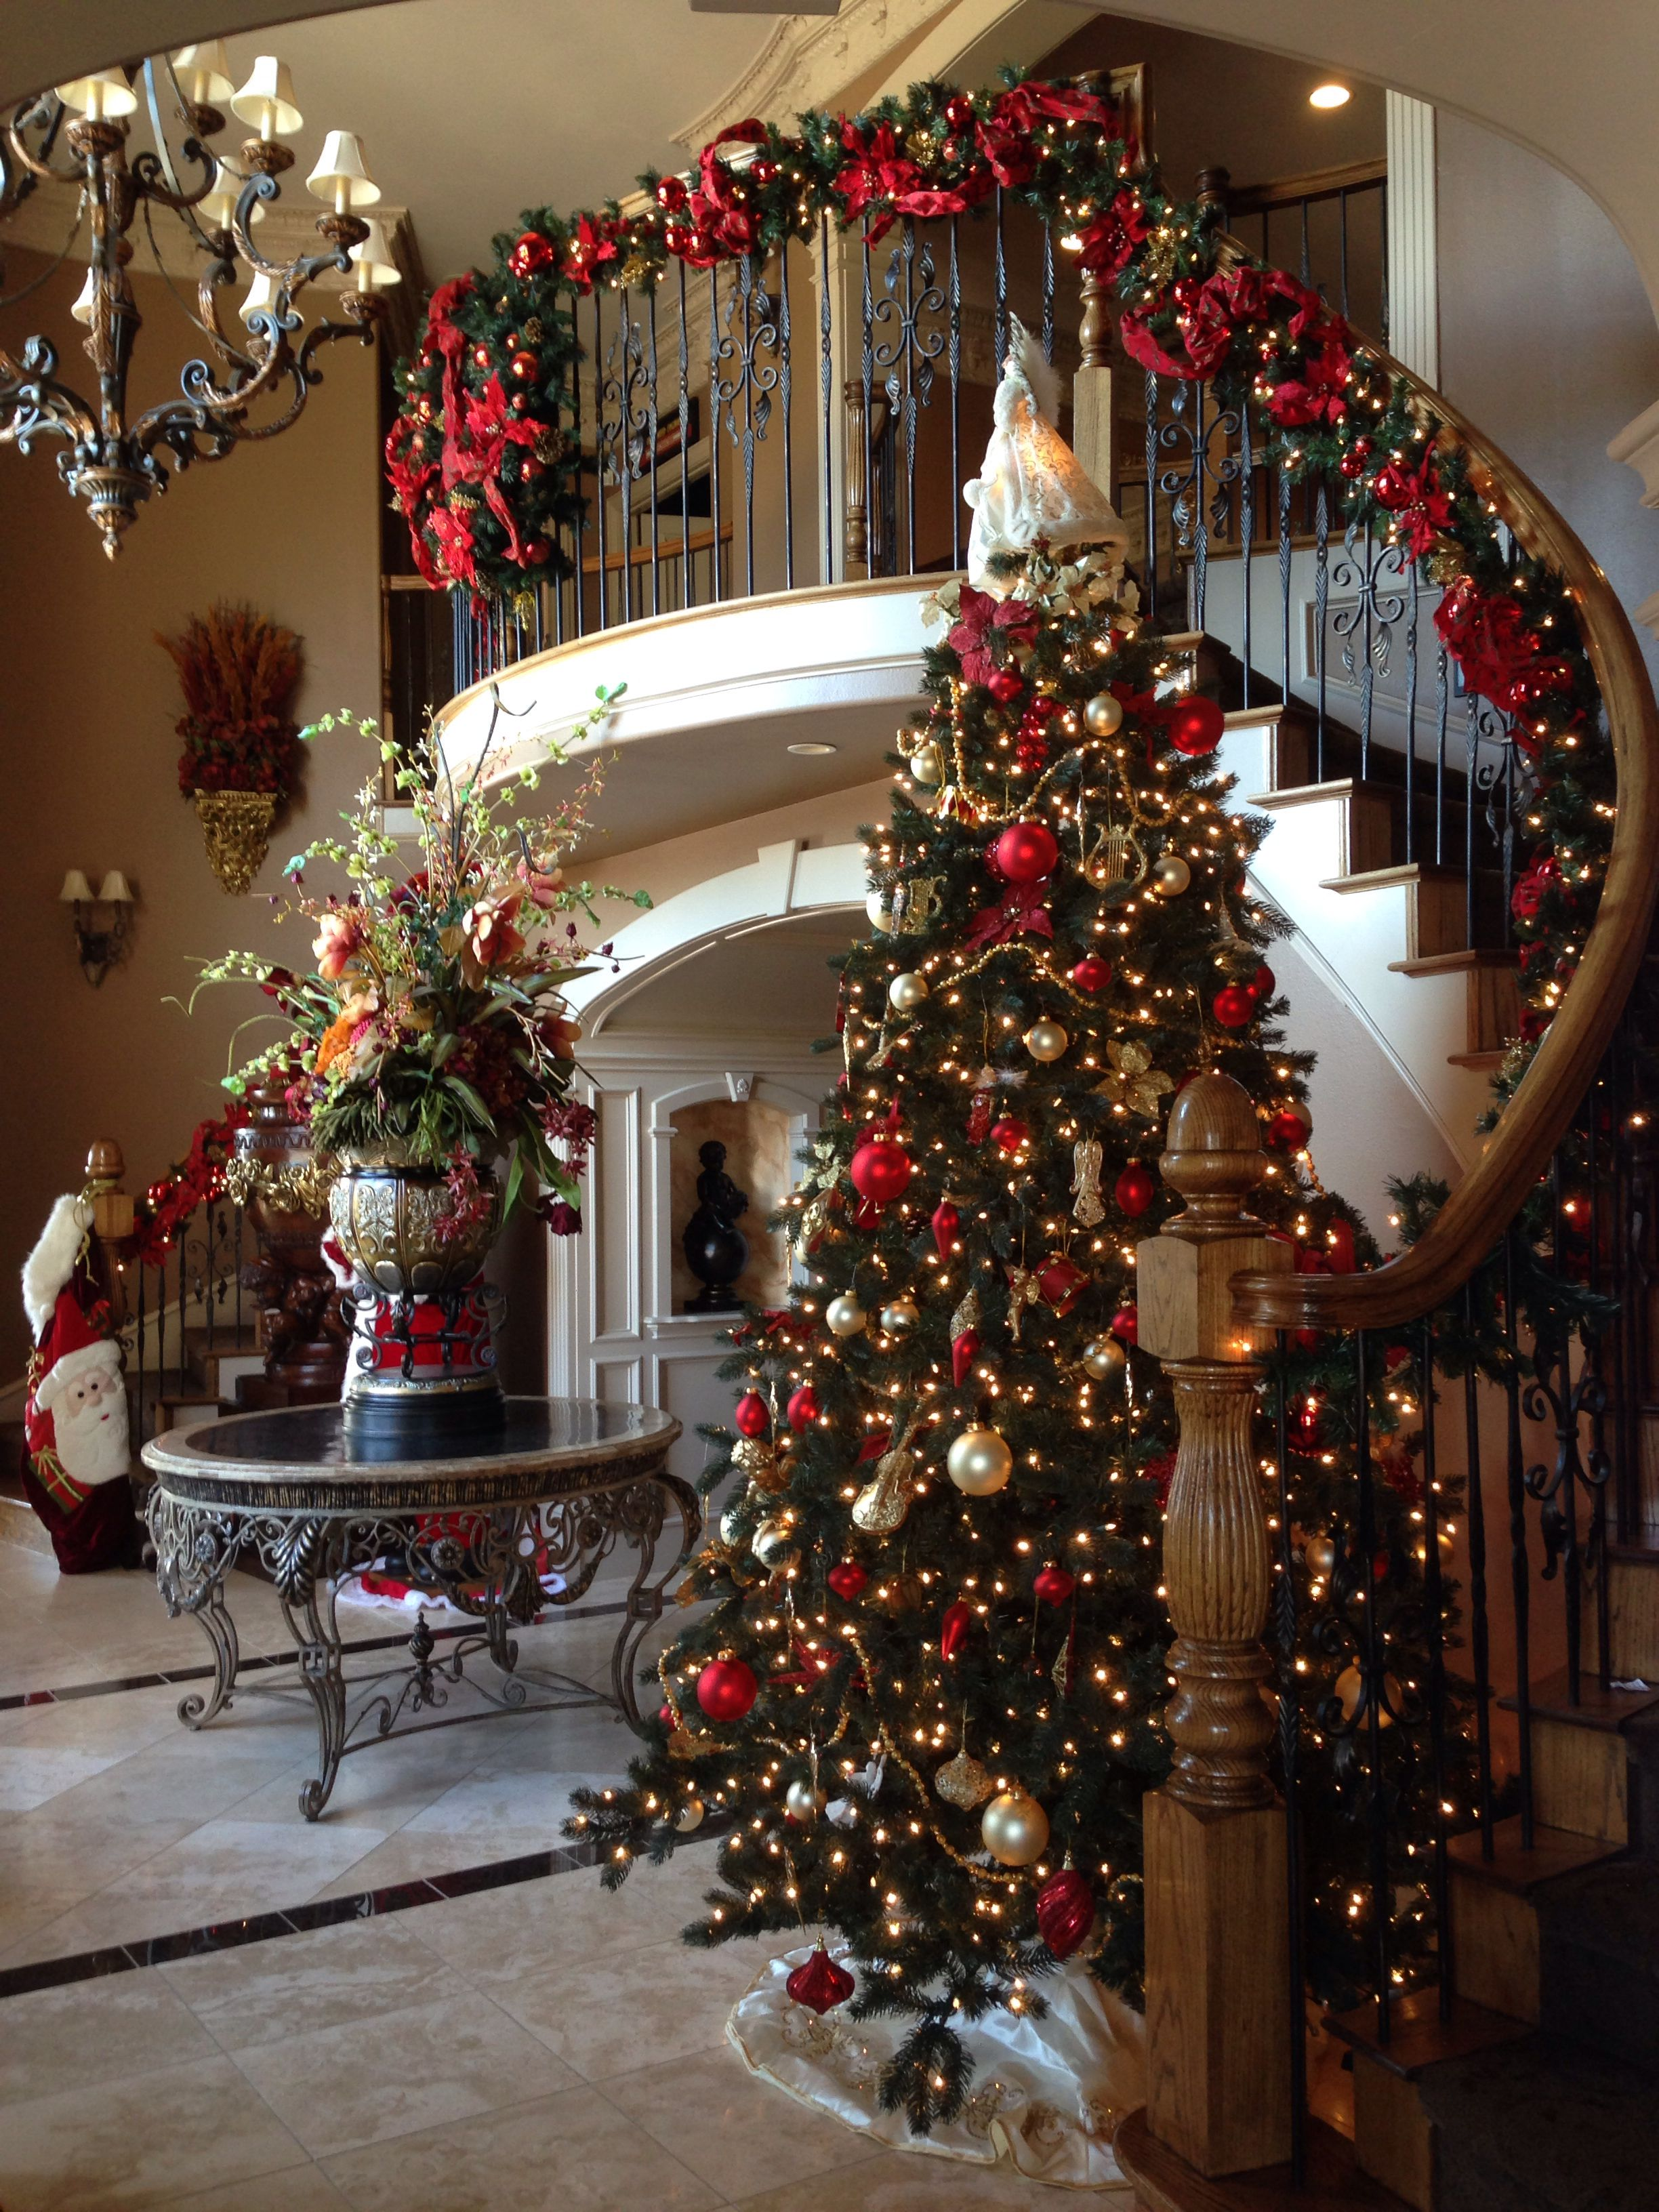 my foyer decorated for christmas - Christmas Decorating Ideas For Foyer